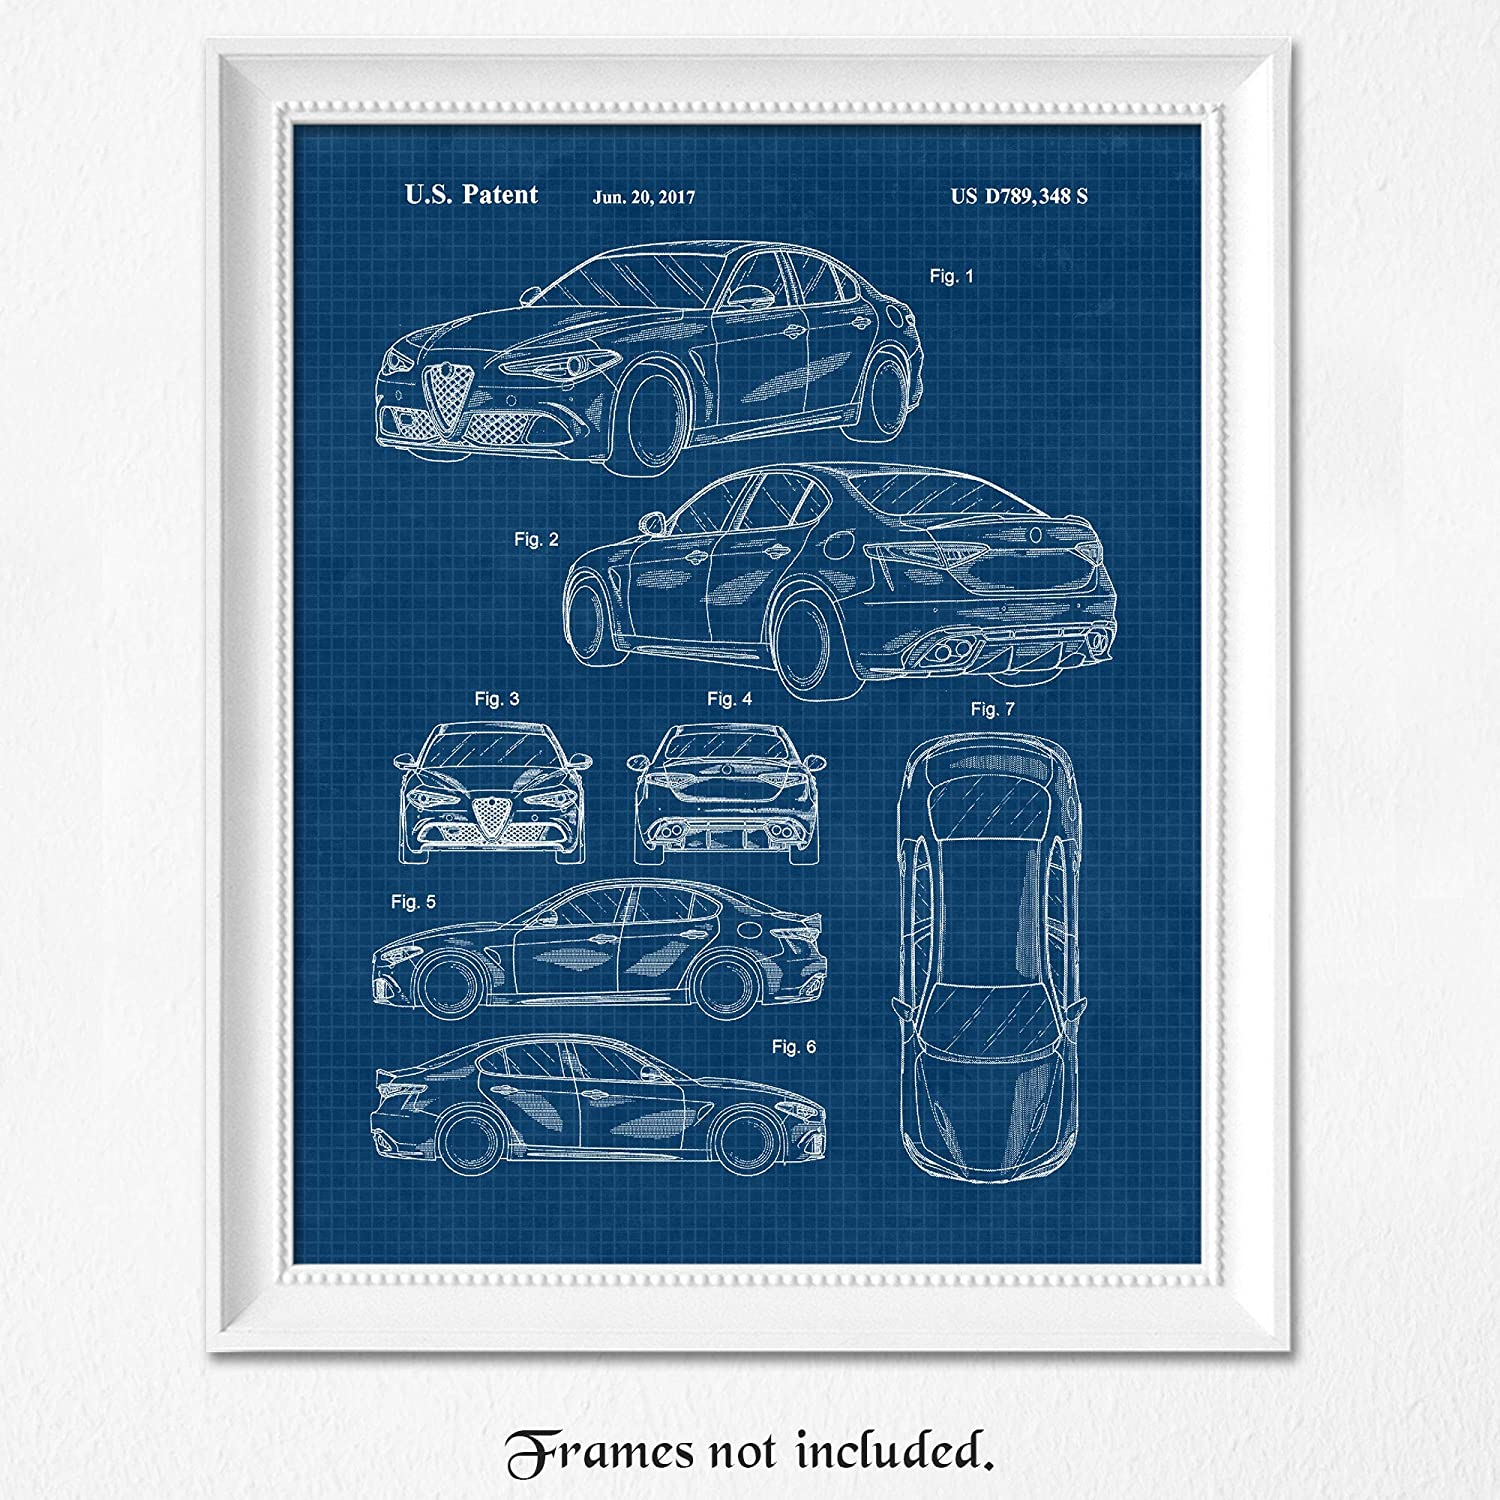 Vintage Alfa Romeo Giulia Blue Patent Poster Prints, Set of 1 (8x10) Unframed Photo, Wall Art Decor Gifts Under 15 for Home, Office, Man Cave, College Student, Teacher, Coach, Italy Cars & Coffee Fan